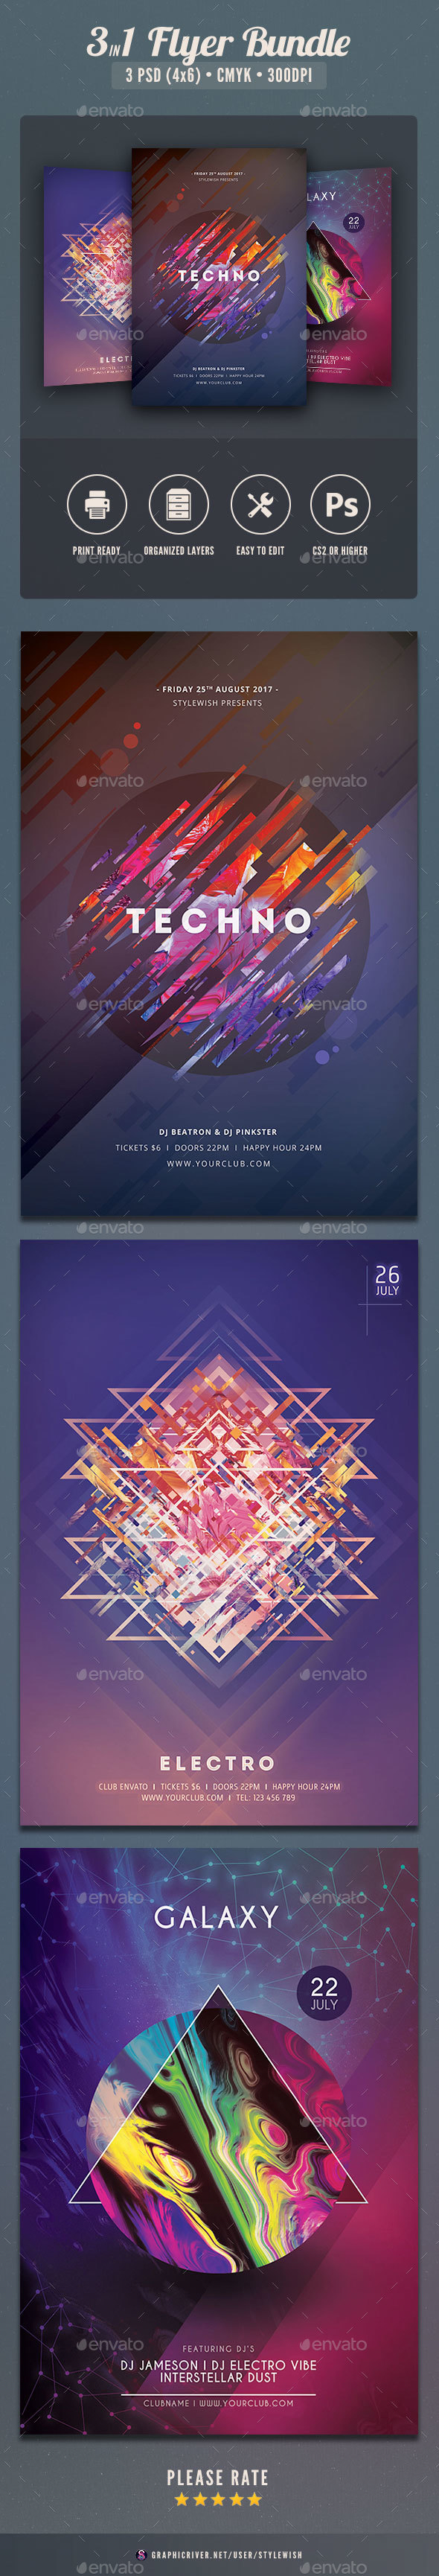 Abstract Flyer Bundle Vol.03 - Clubs & Parties Events